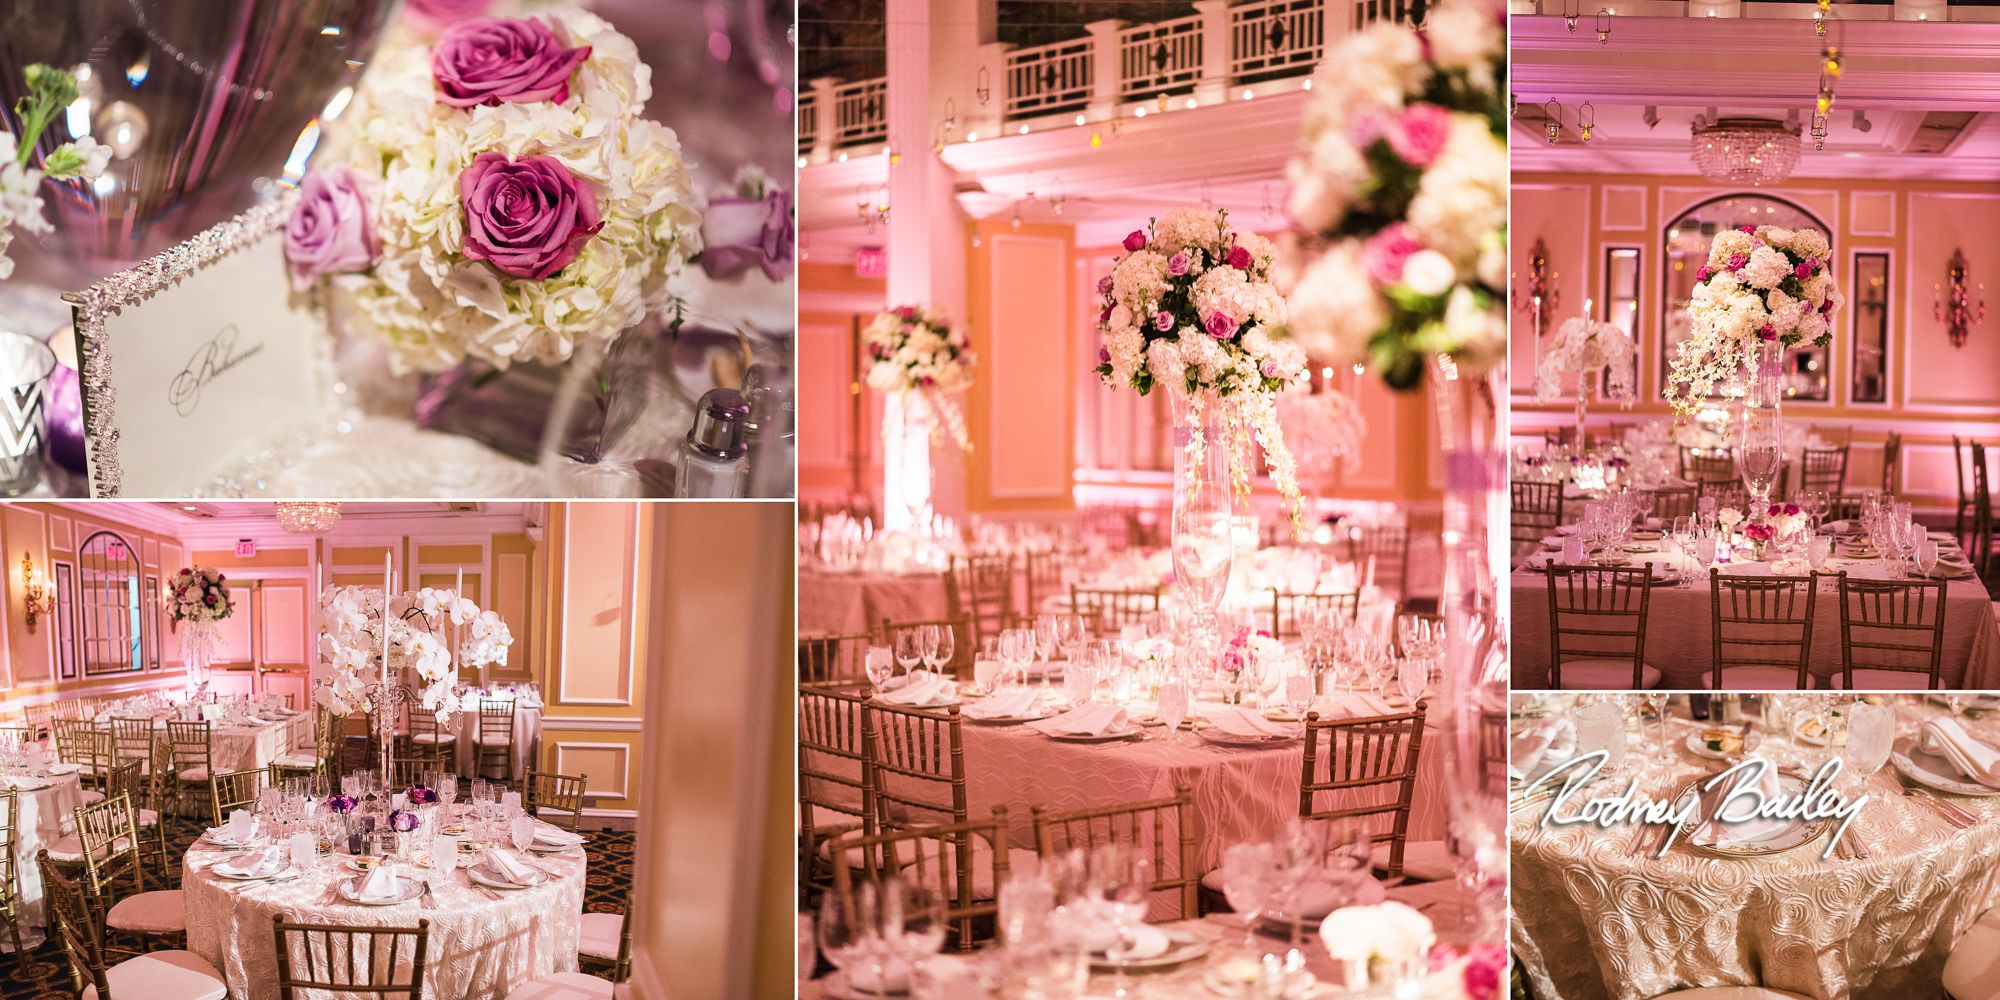 wedding reception venues cost%0A   Pieces of Advice for Choosing a Wedding Venue    Have a chat with partner